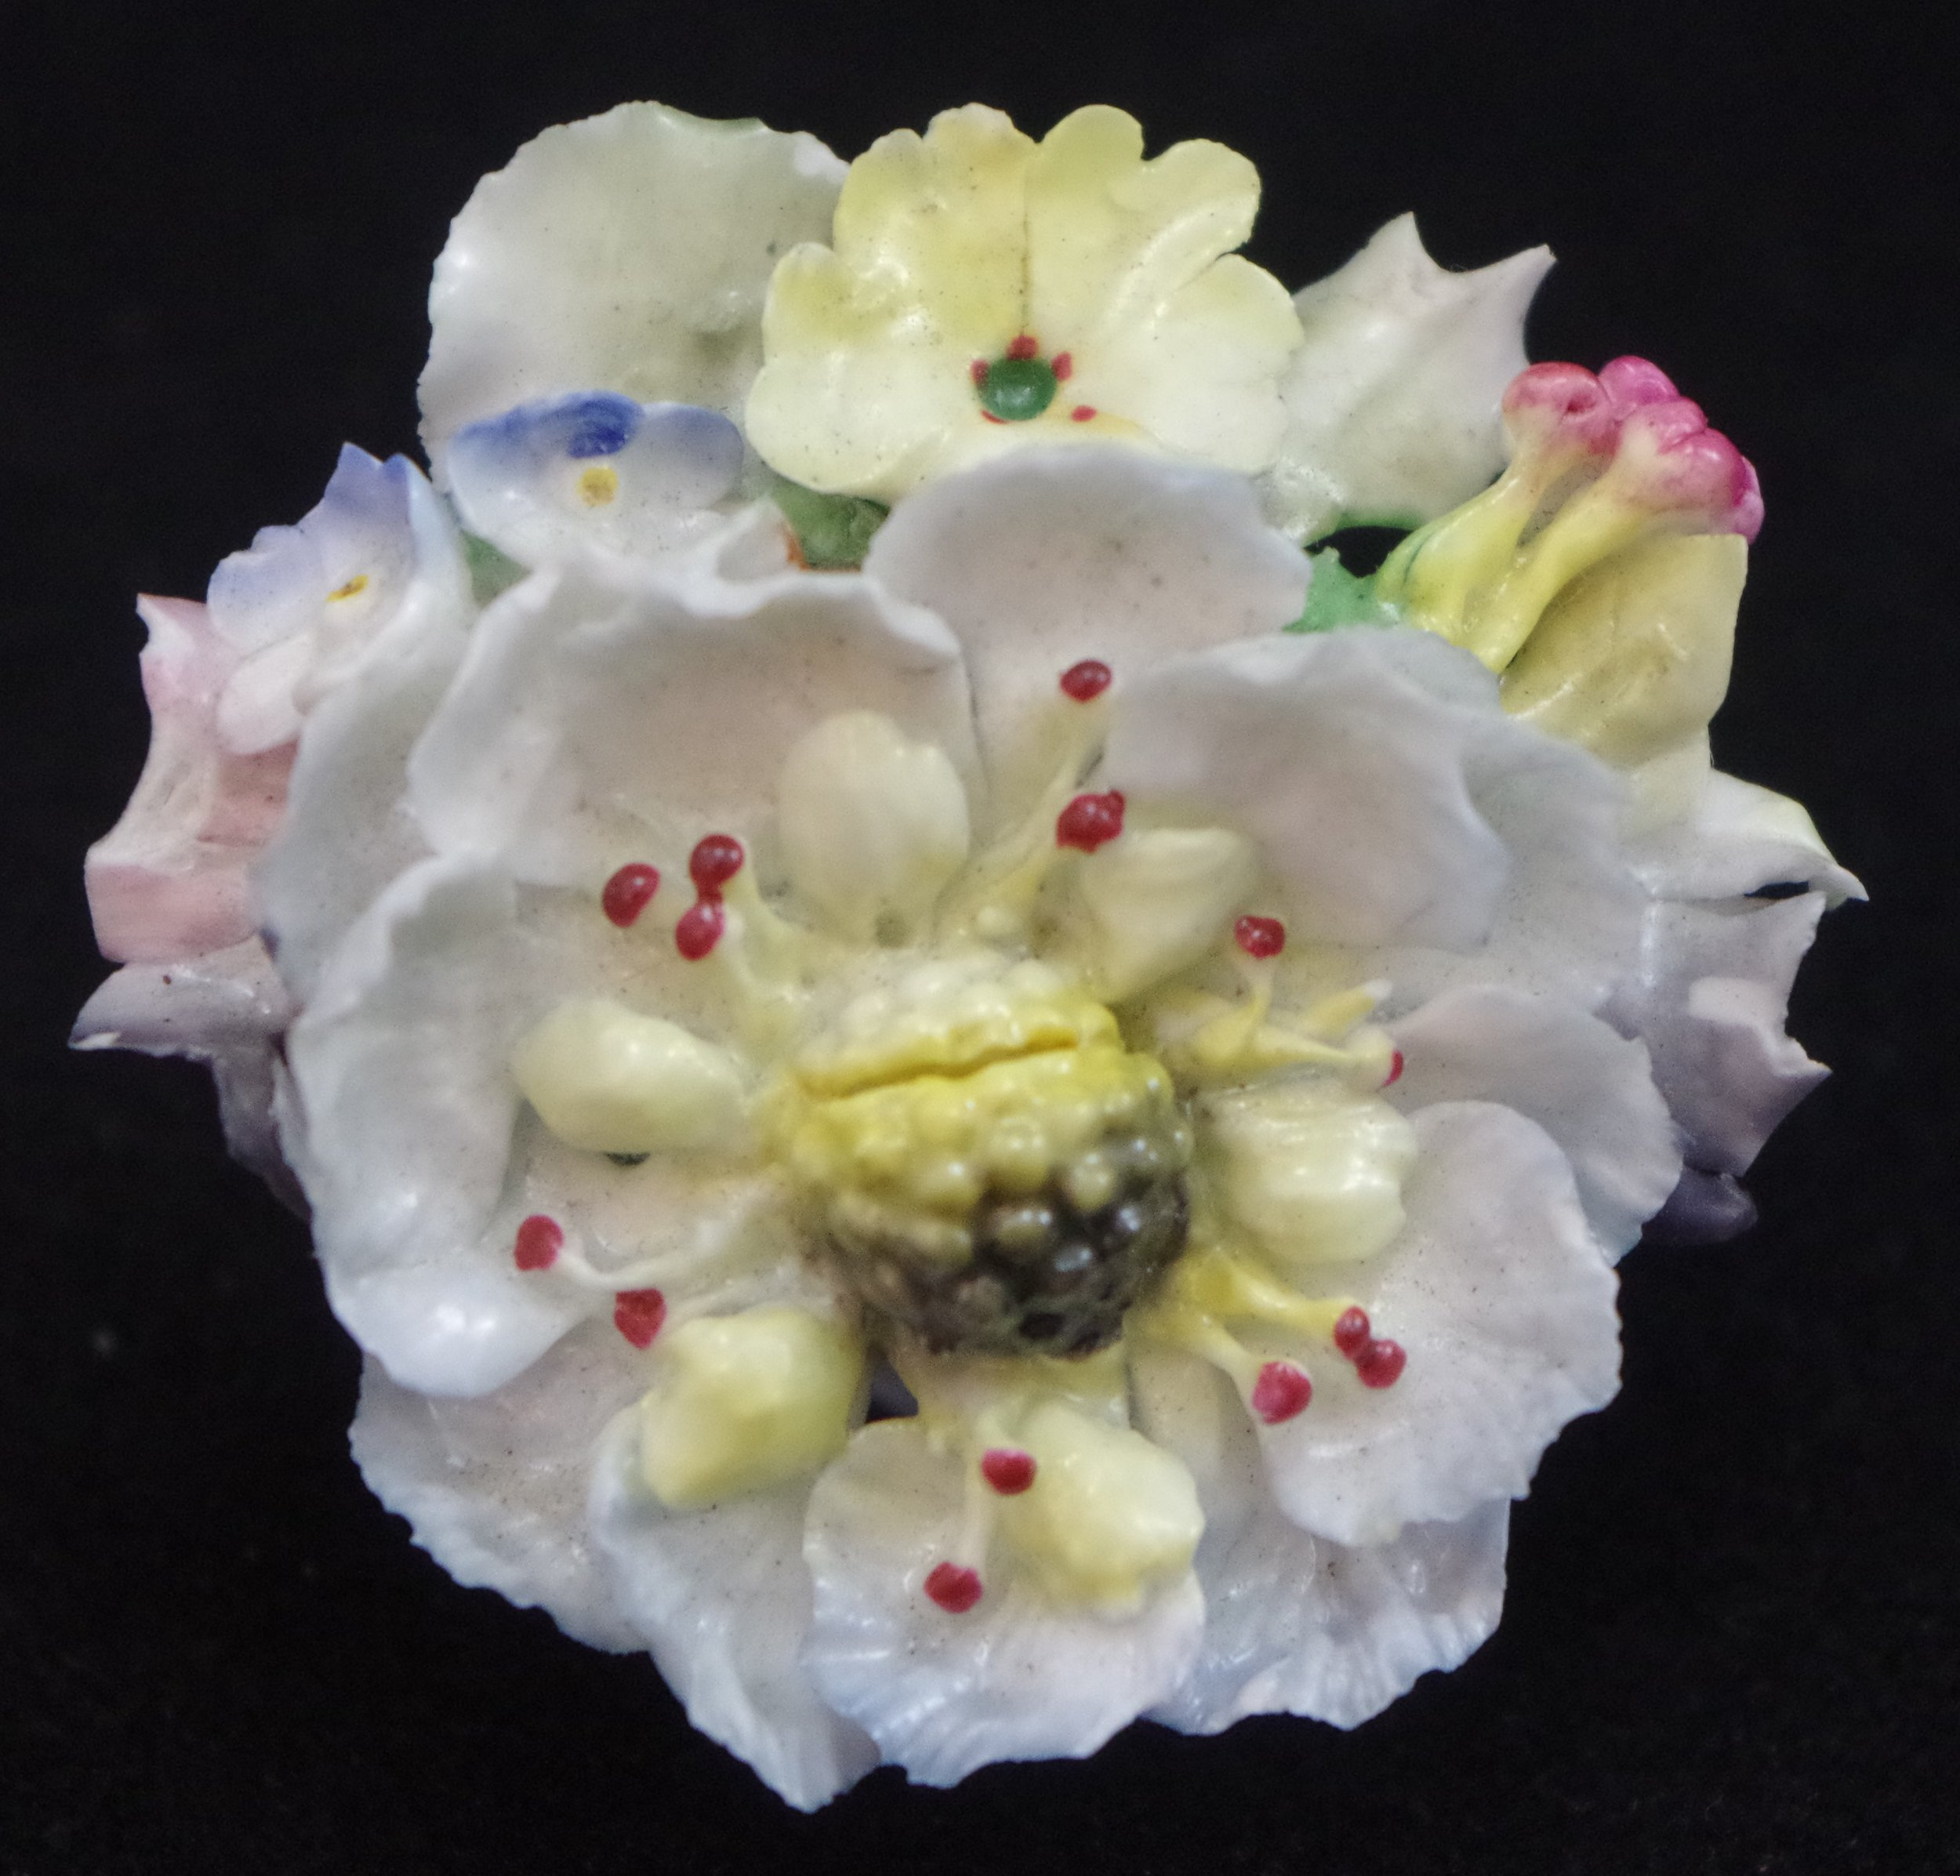 royal-crown-derby-brooch-a